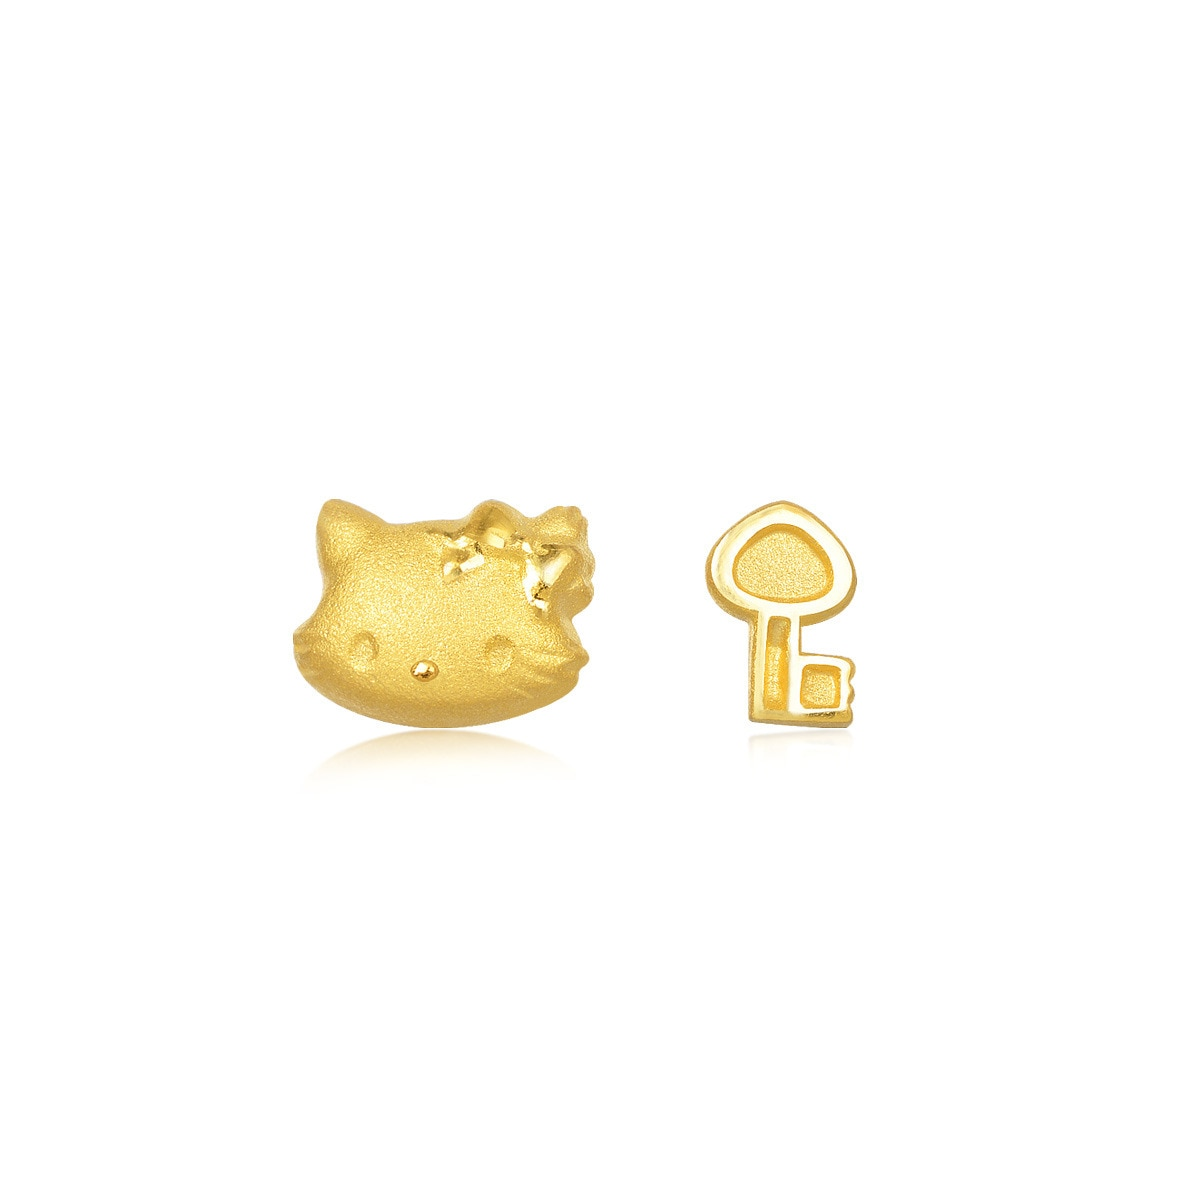 sanrio charmmy kitty 9999 gold earrings chow sang